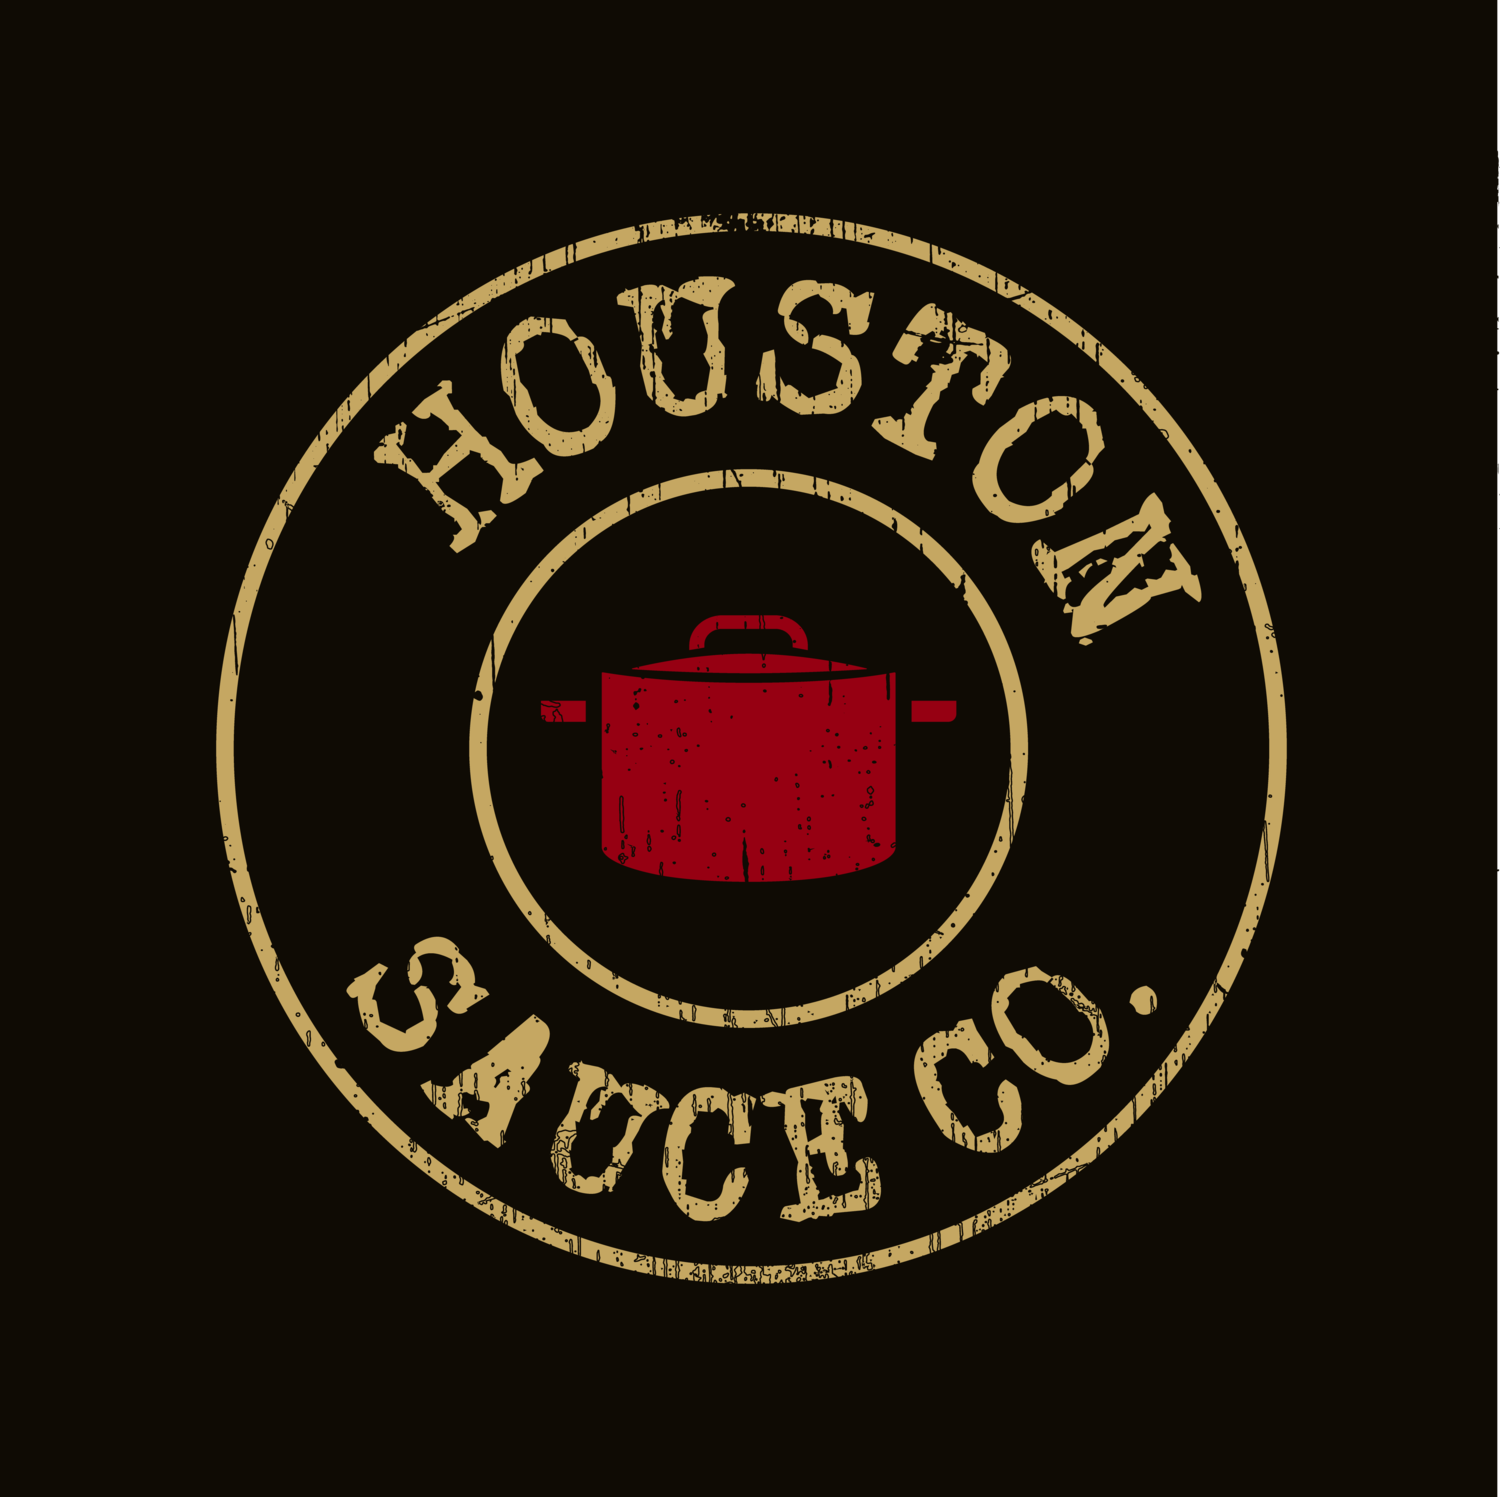 Houston Sauce Co.